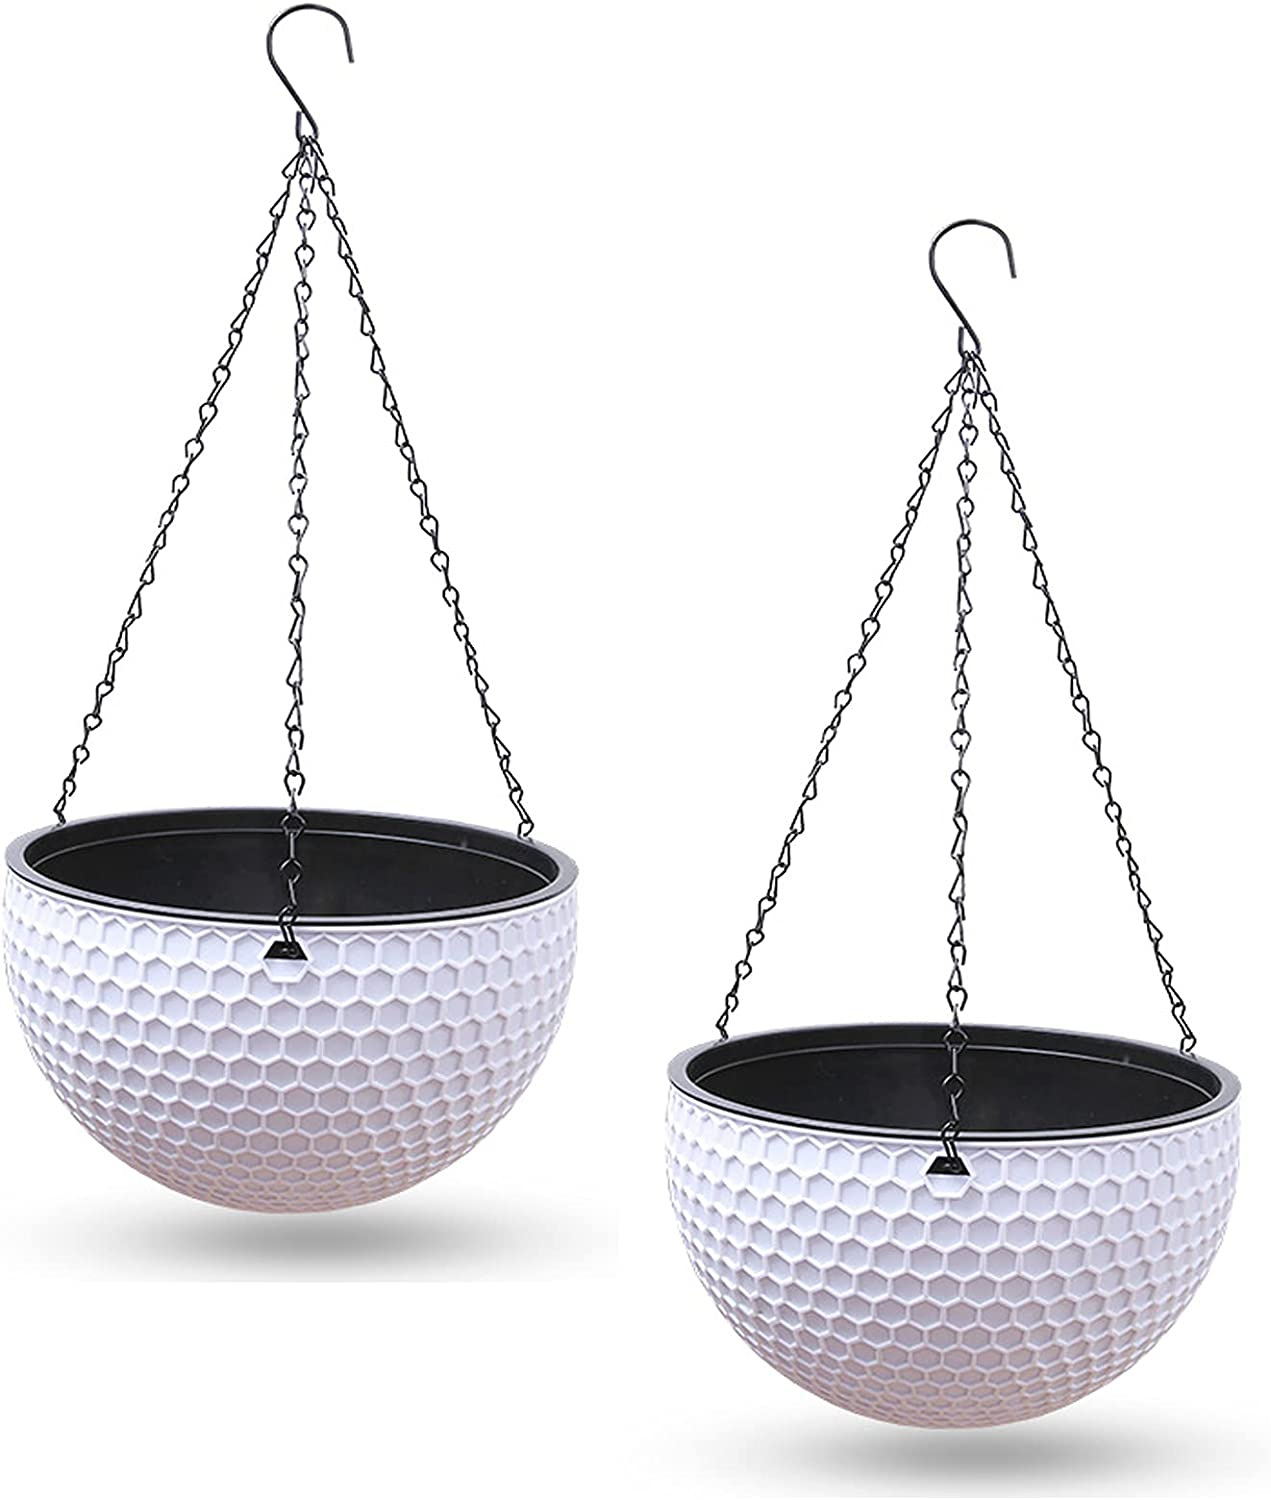 Popular products Zentto Hanging Planters 2 Pack Flower Philadelphia Mall Out Indoor Pots for Plants